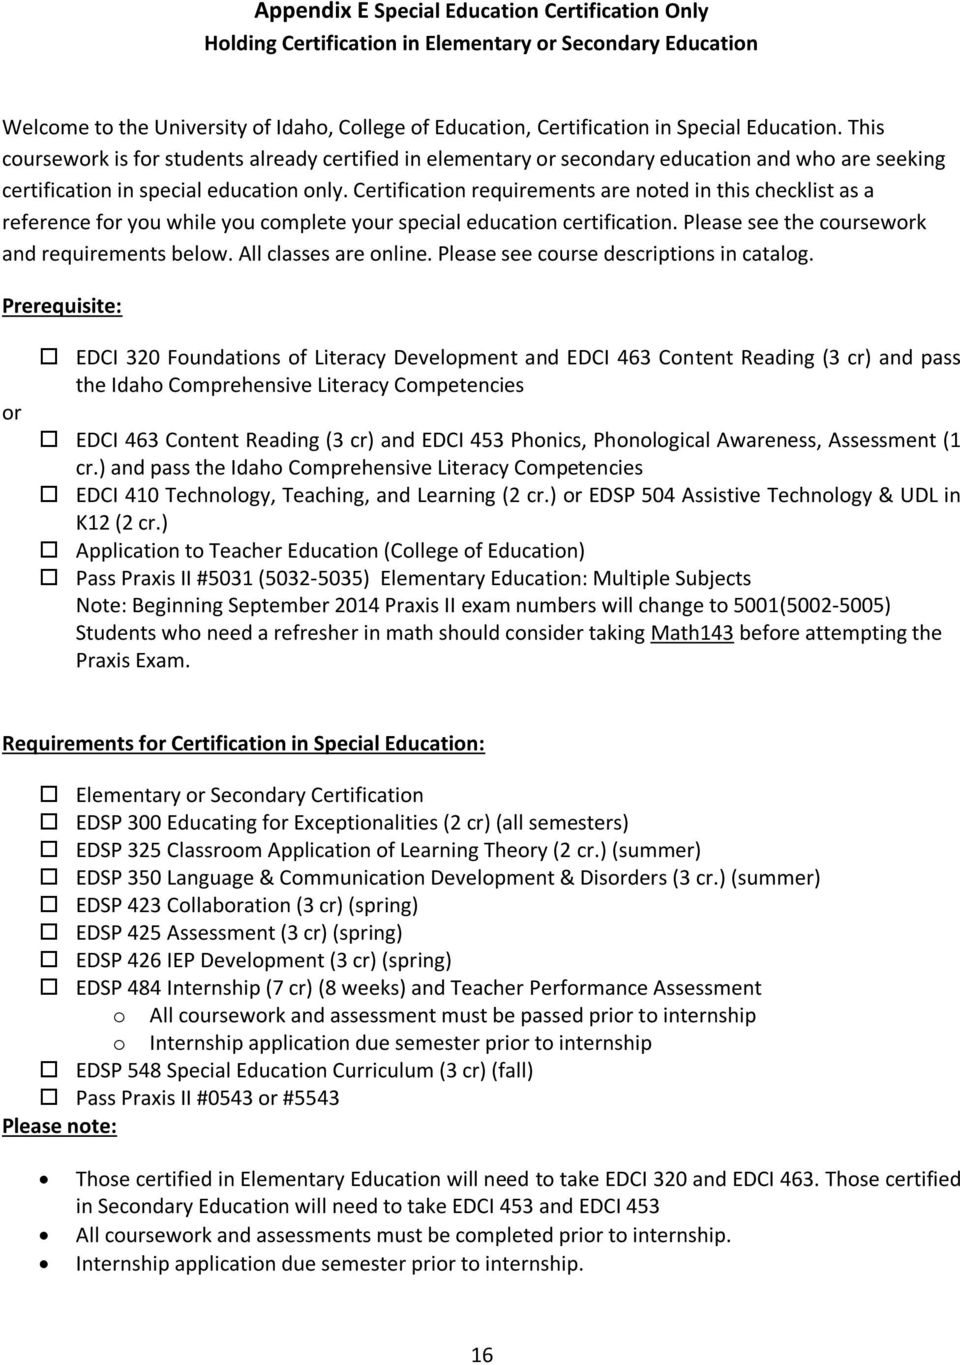 Certification requirements are noted in this checklist as a reference for you while you complete your special education certification. Please see the coursework and requirements below.